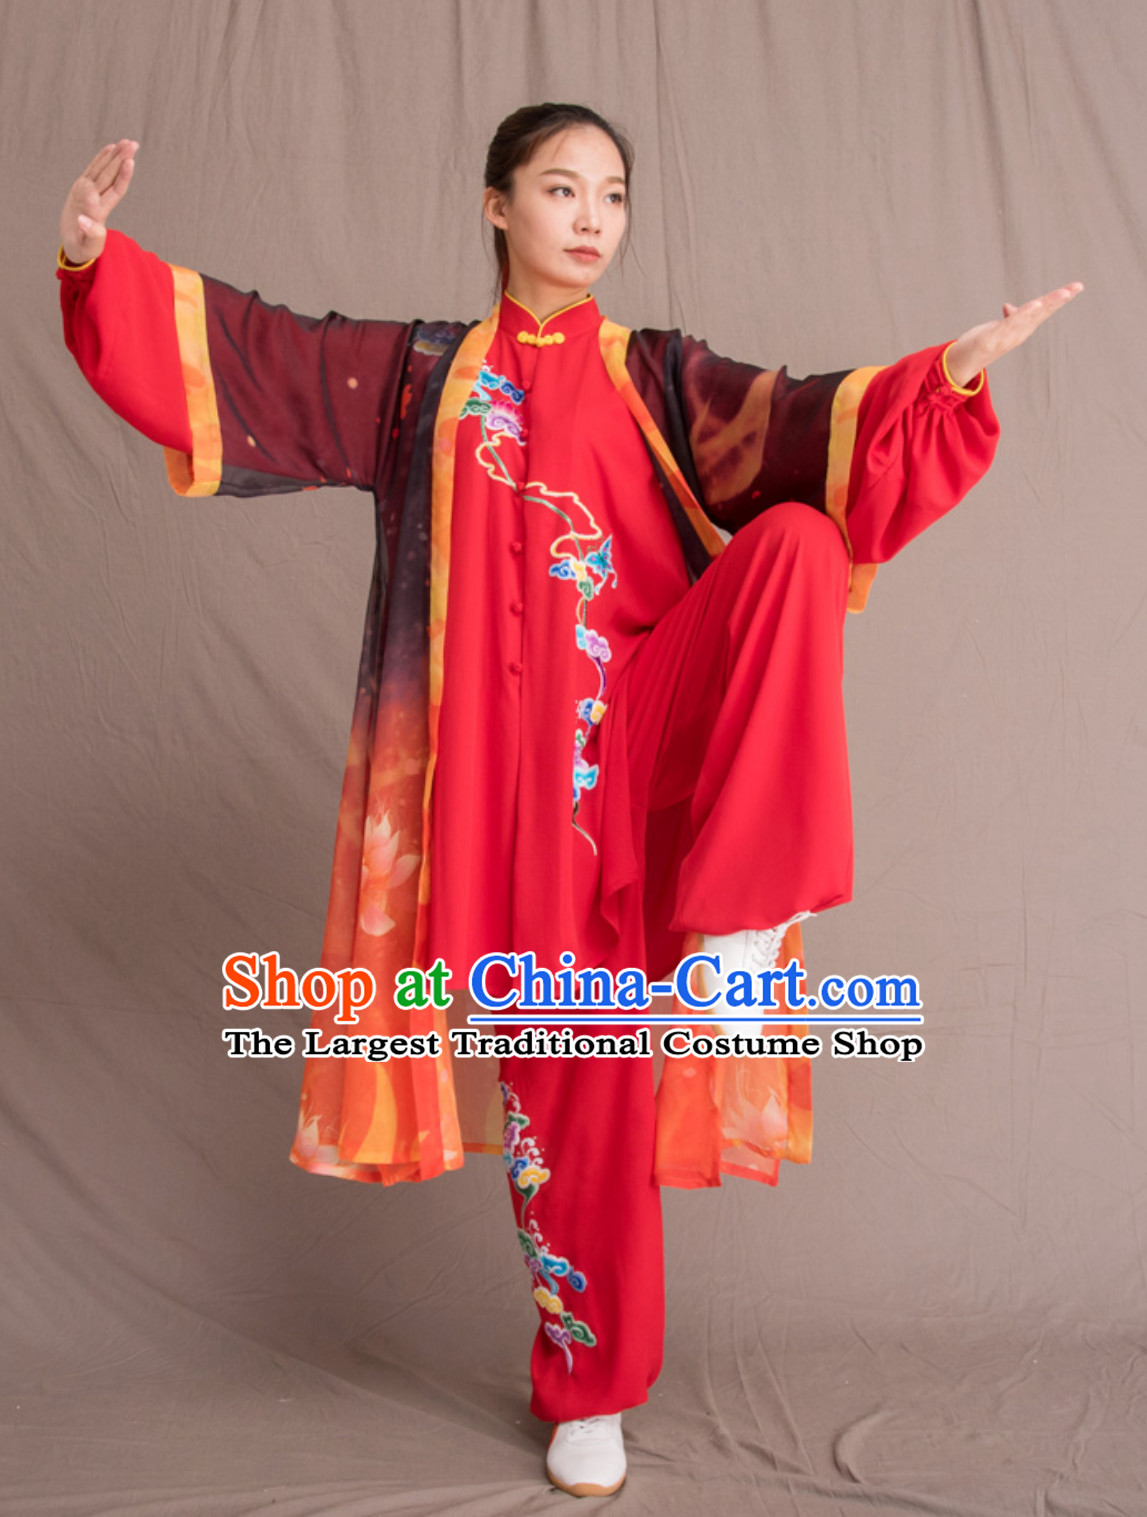 Top Chinese Classical Competition Championship Professional Tai Chi Uniforms Taiji Kung Fu Wing Chun Kungfu Tai Ji Sword Master Dress Clothing Suits Clothing Full Set